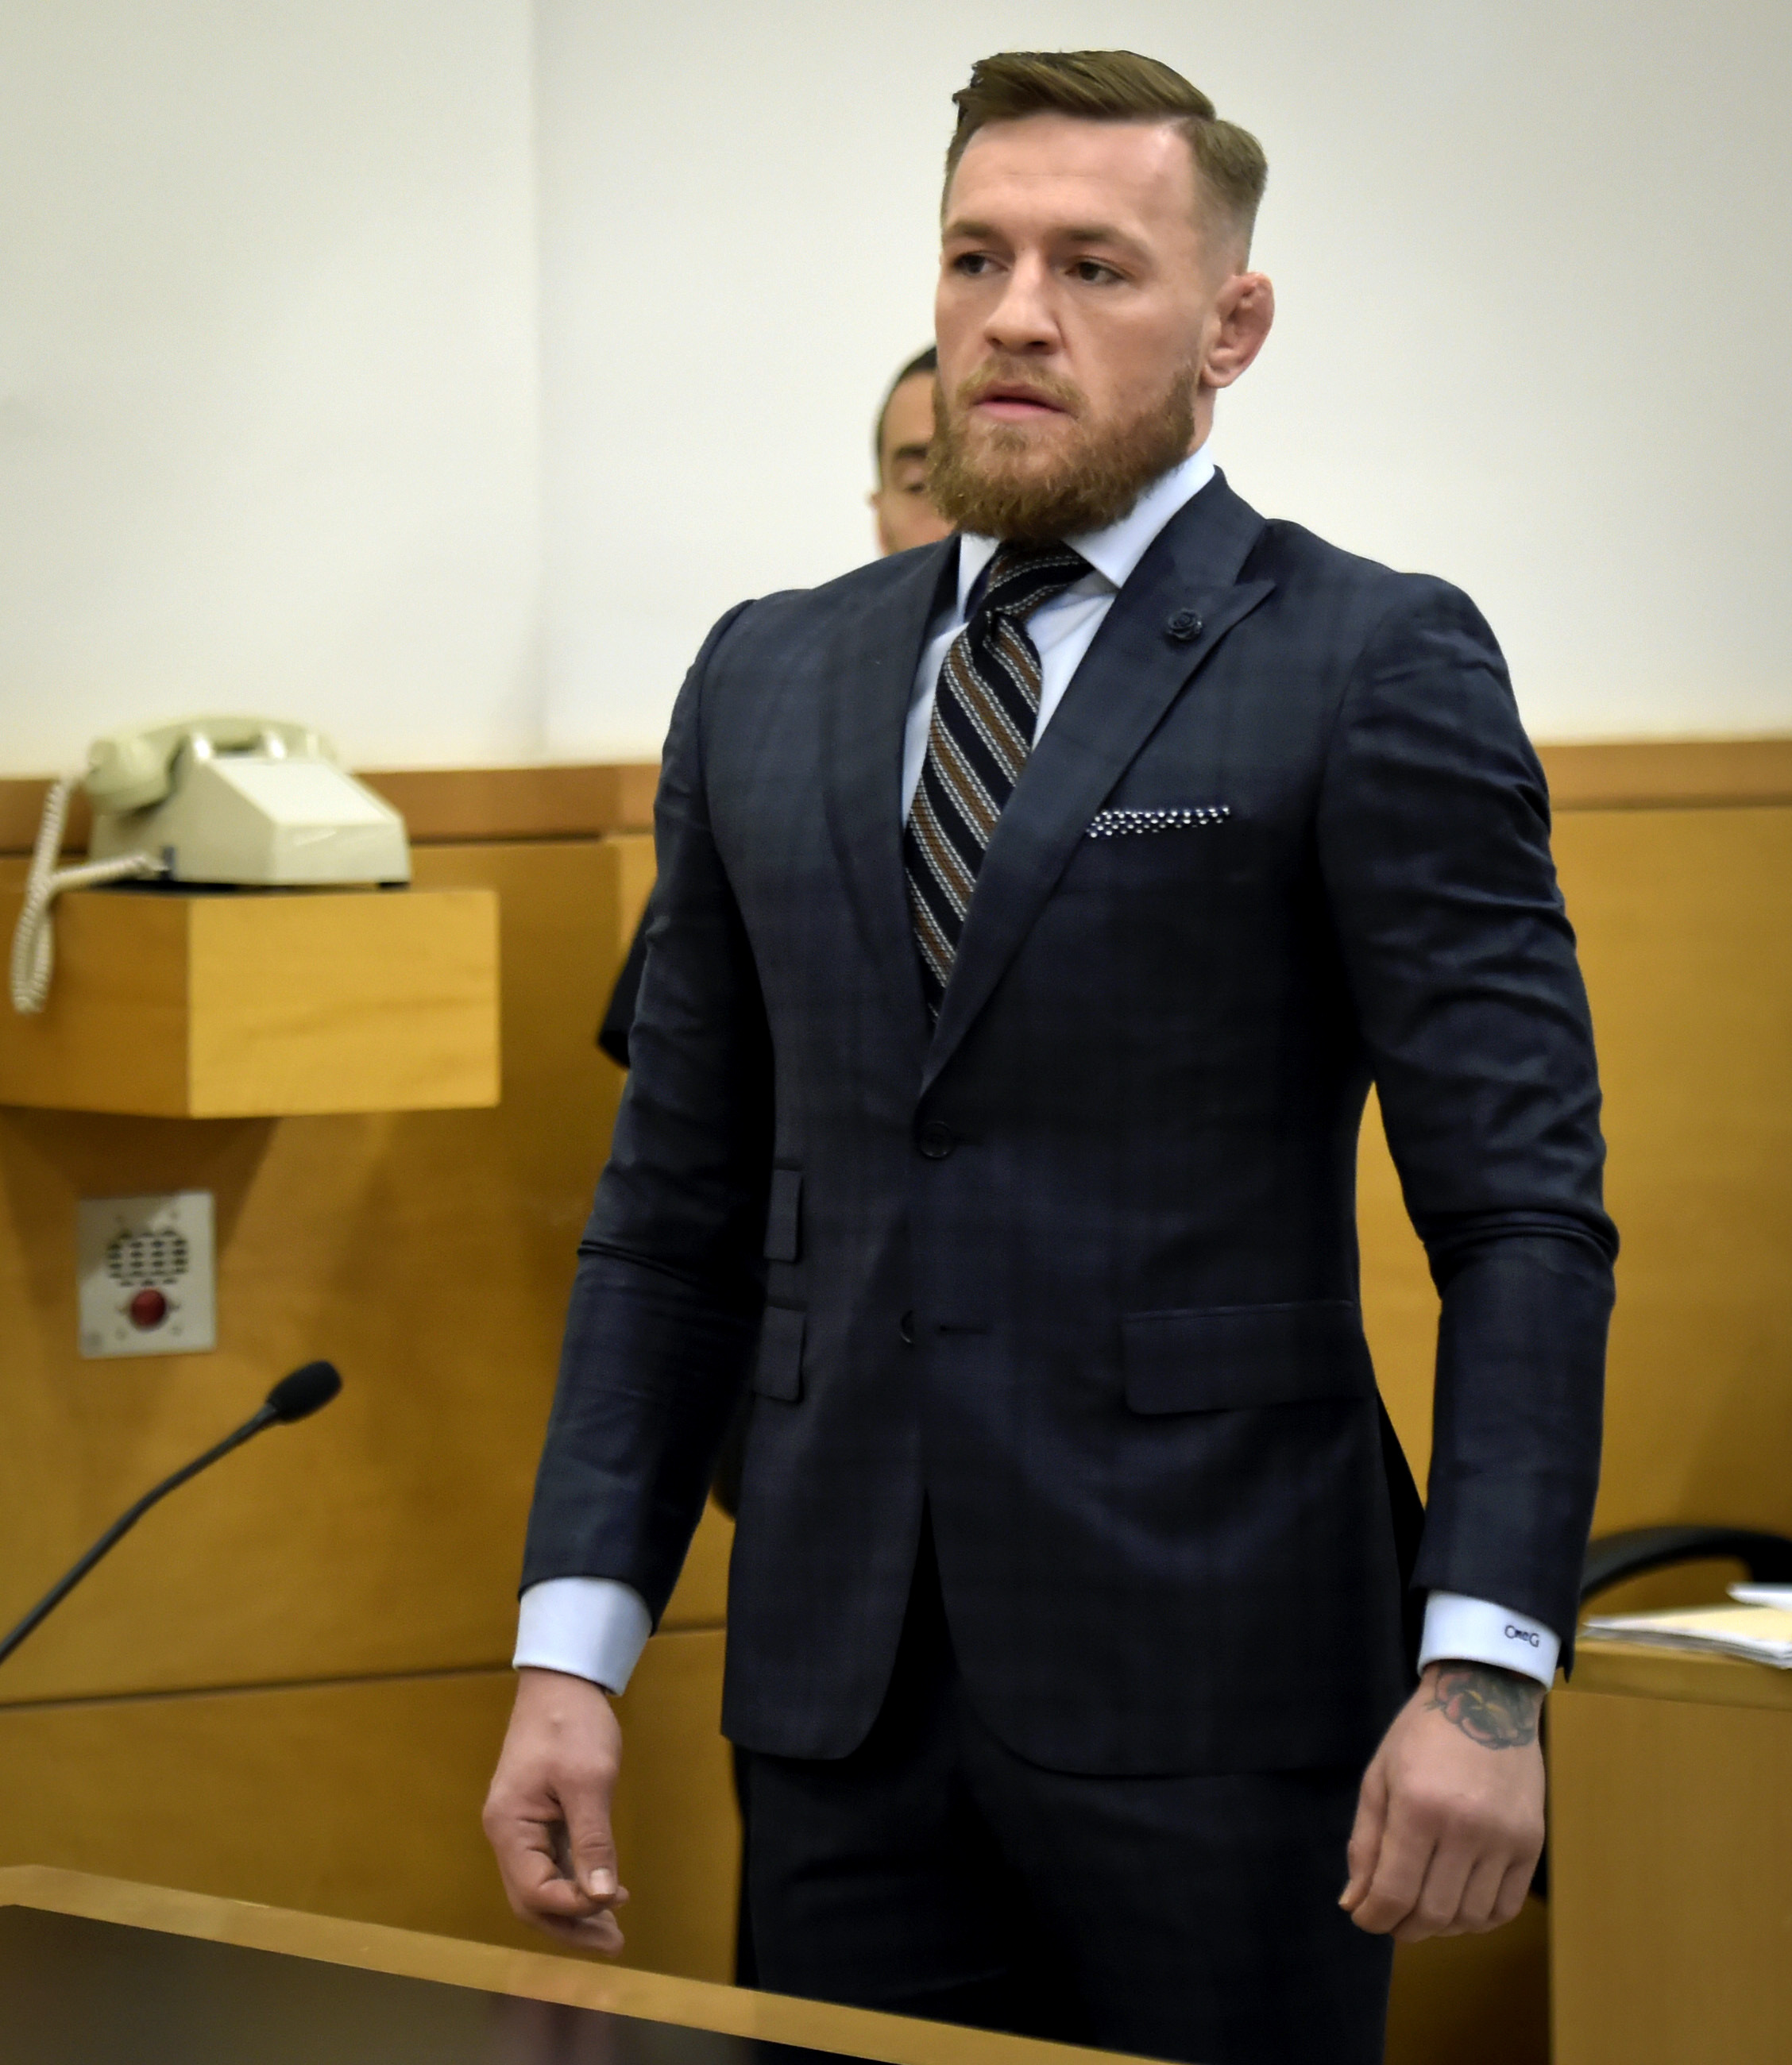 Conor McGregor in plea negotiations after melee